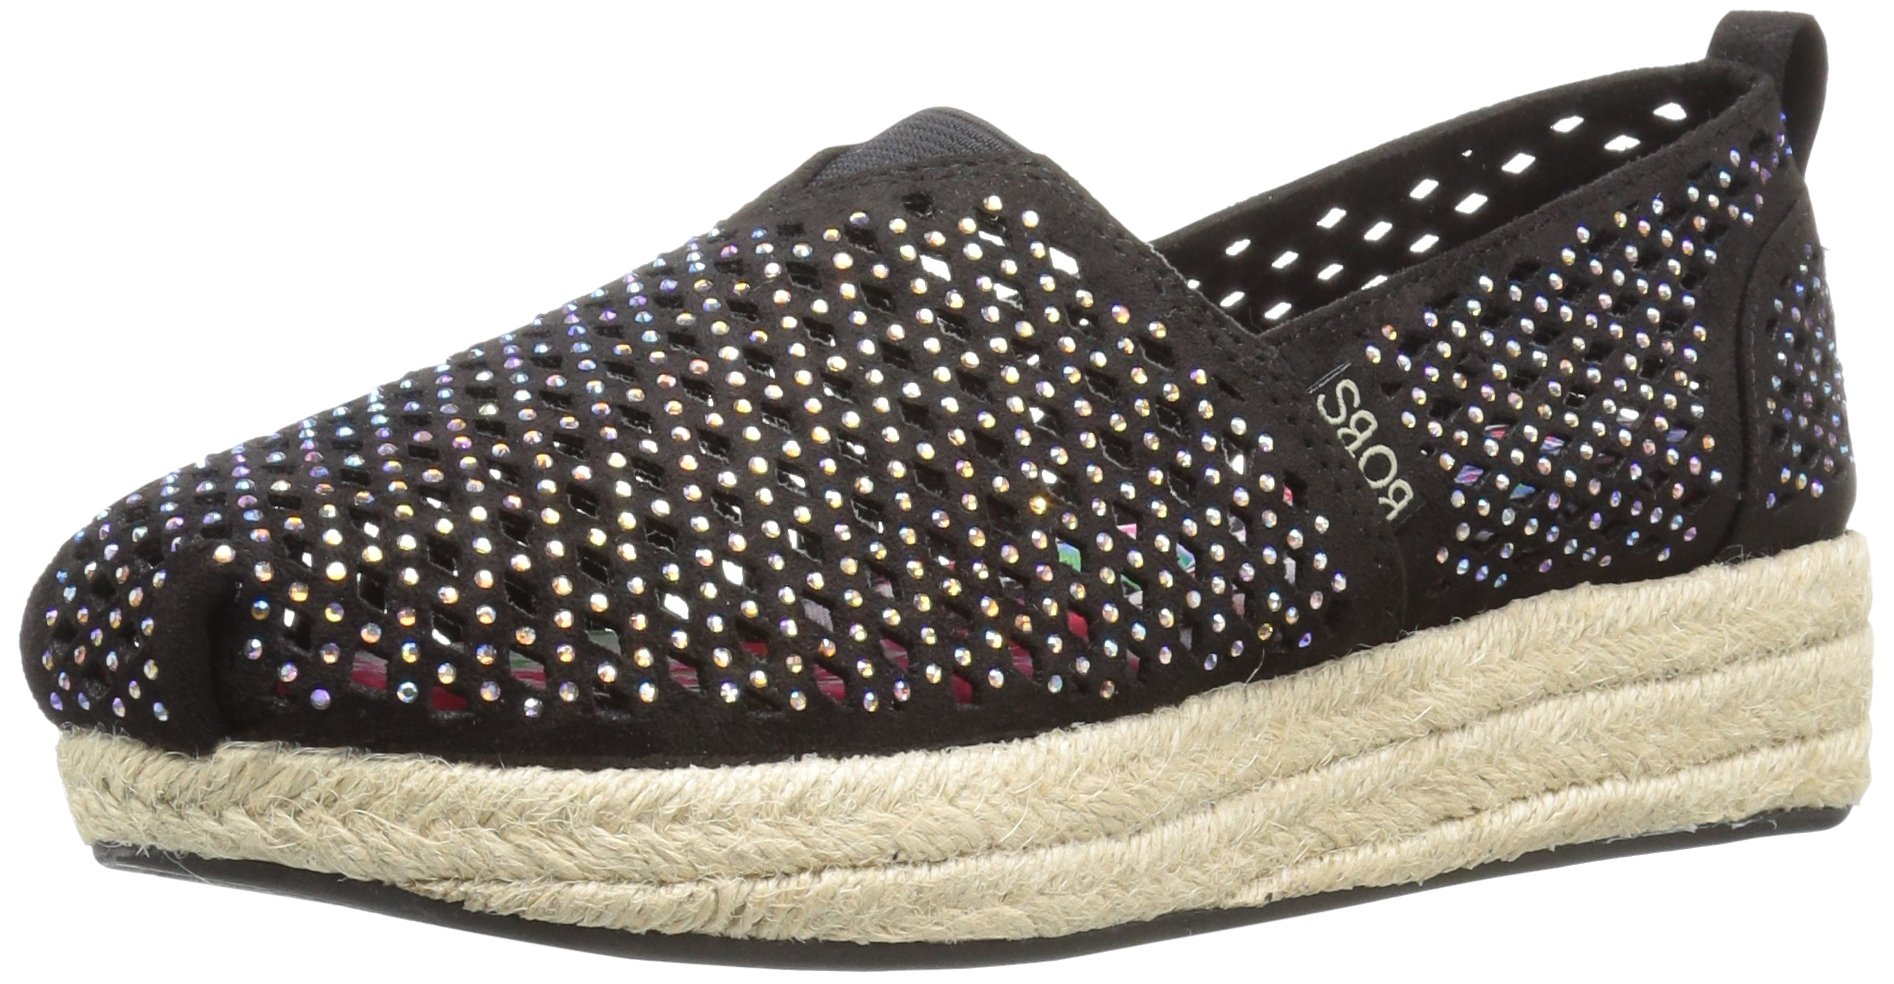 Skechers BOBS from Women's Highlights-Glamsquad Wedge, Black Gem, 9.5 M US